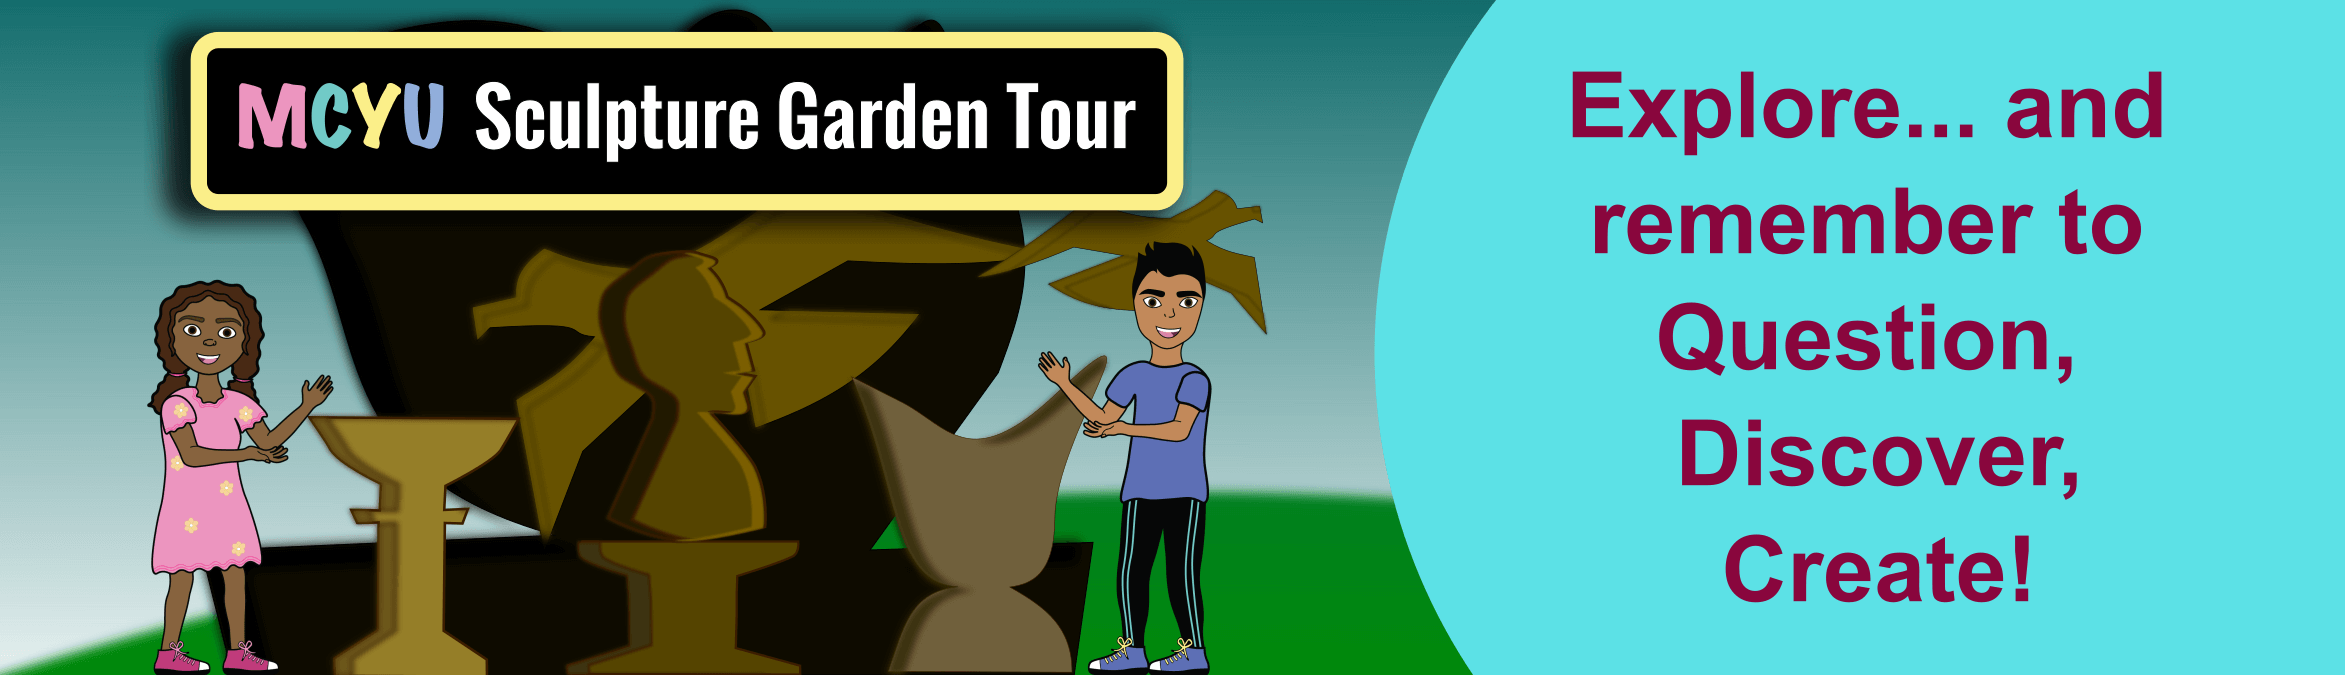 MCYU Sculpture Garden Tour. Explore and remember to question, discover, create!